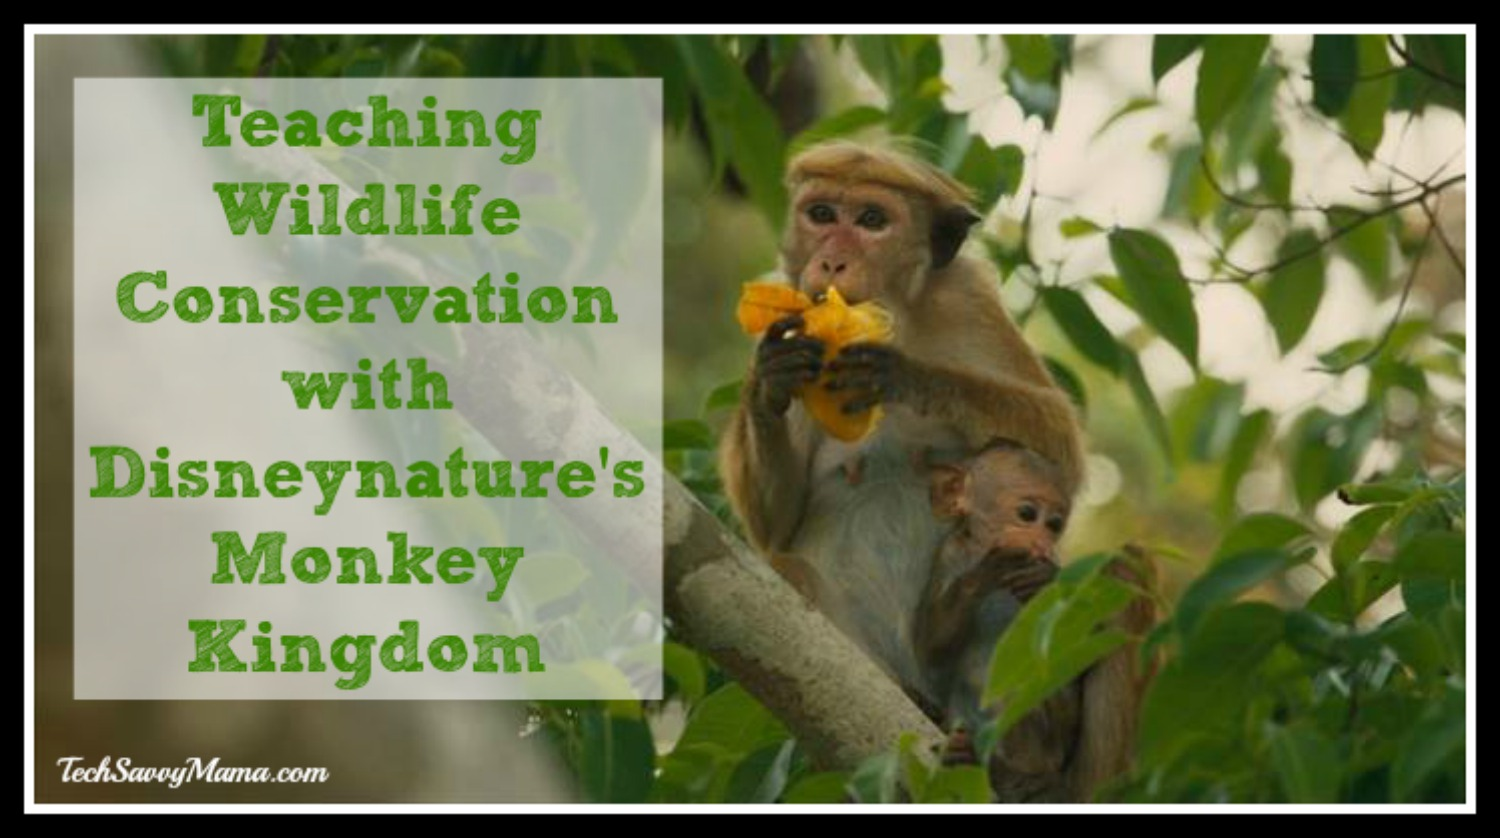 wildlife conservation in south asia Wildlife asia stands beside local throughout asia the threats from wildlife conservation cannot be effective without genuine consideration of.